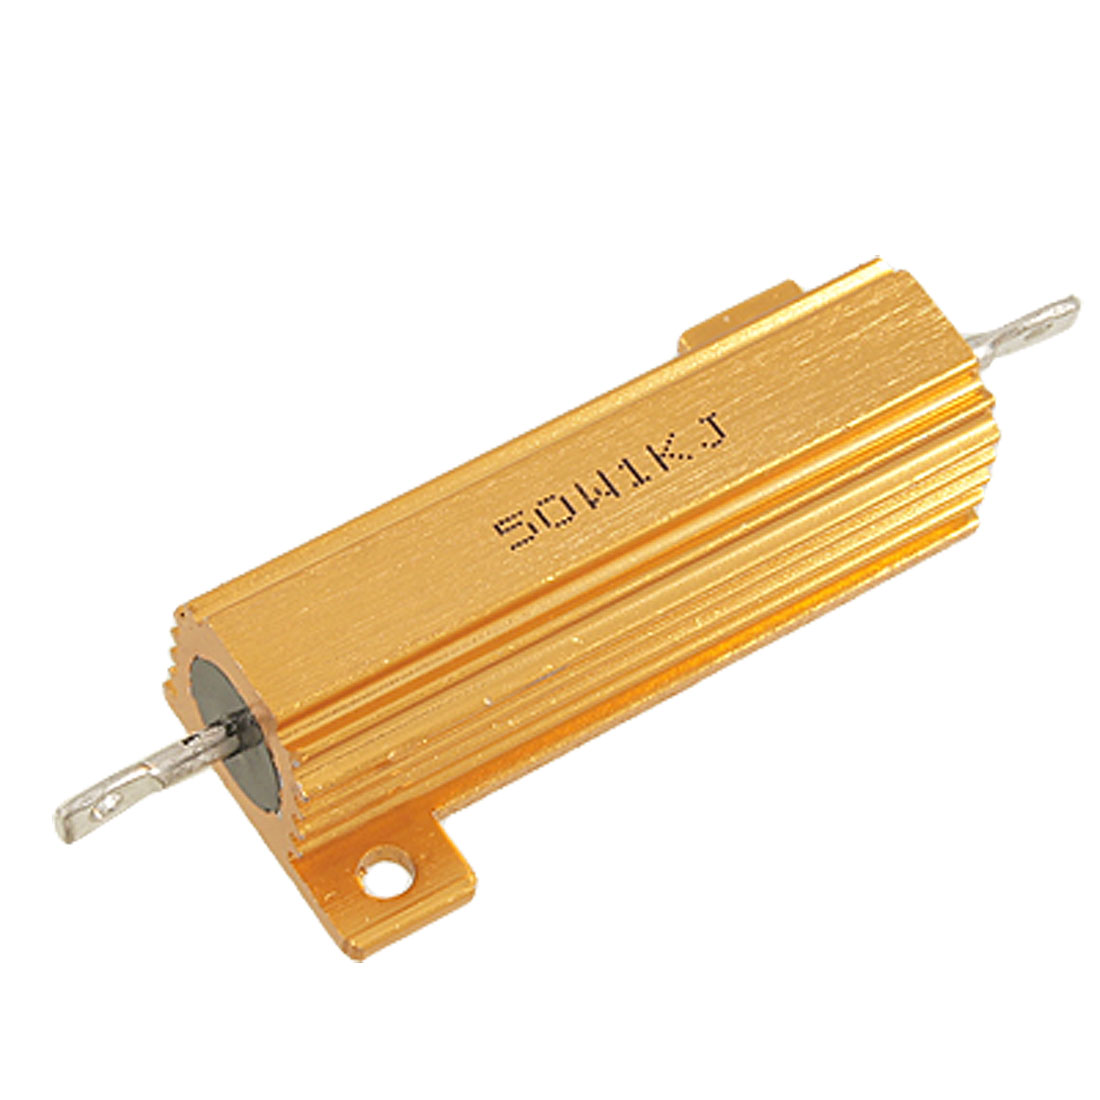 1000 Ohm 5% 50 Watt Wire Wound Aluminum Case Power Resistor Gold Tone